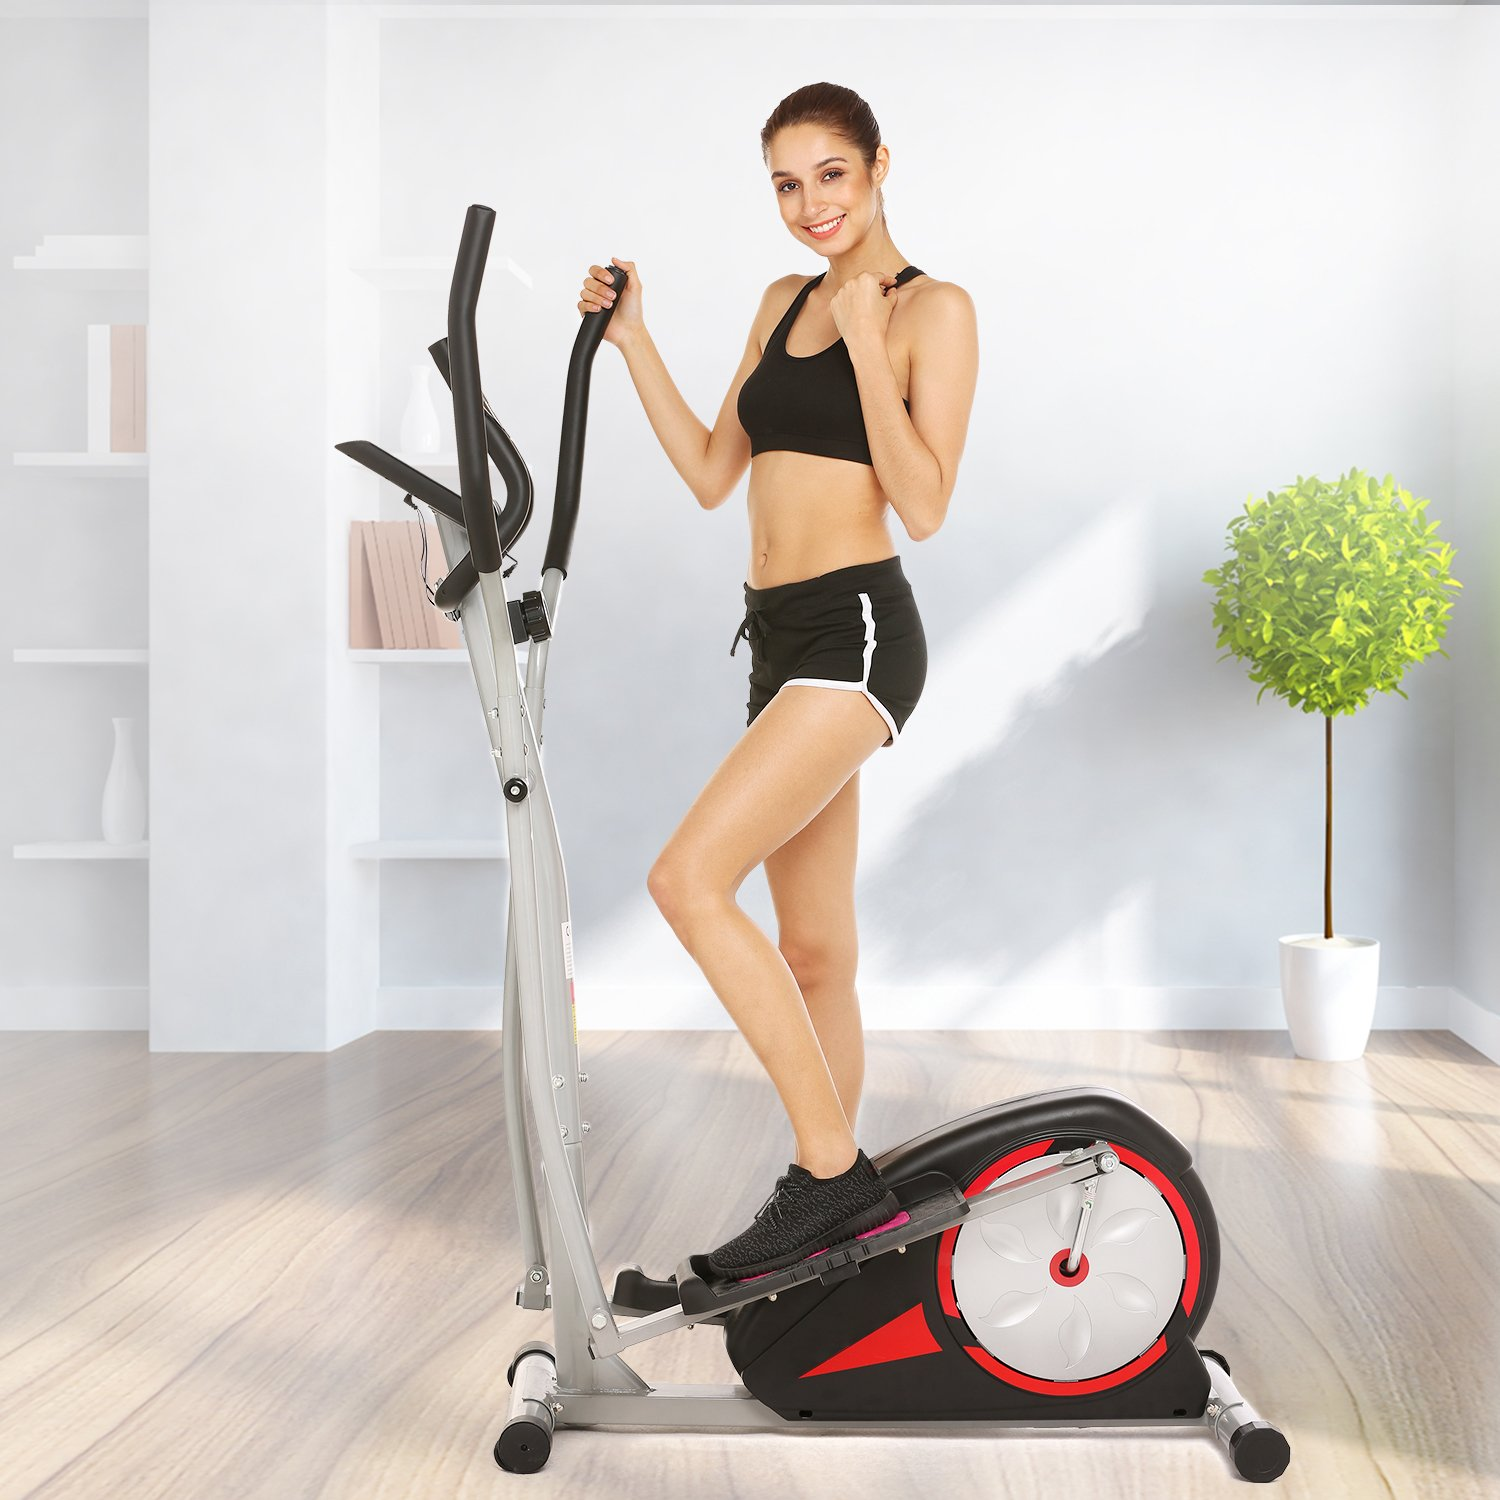 ANCHEER Elliptical Machine Trainer Magnetic Smooth Quiet Driven with LCD Monitor and Pulse Rate Grips (Silver) by ANCHEER (Image #1)